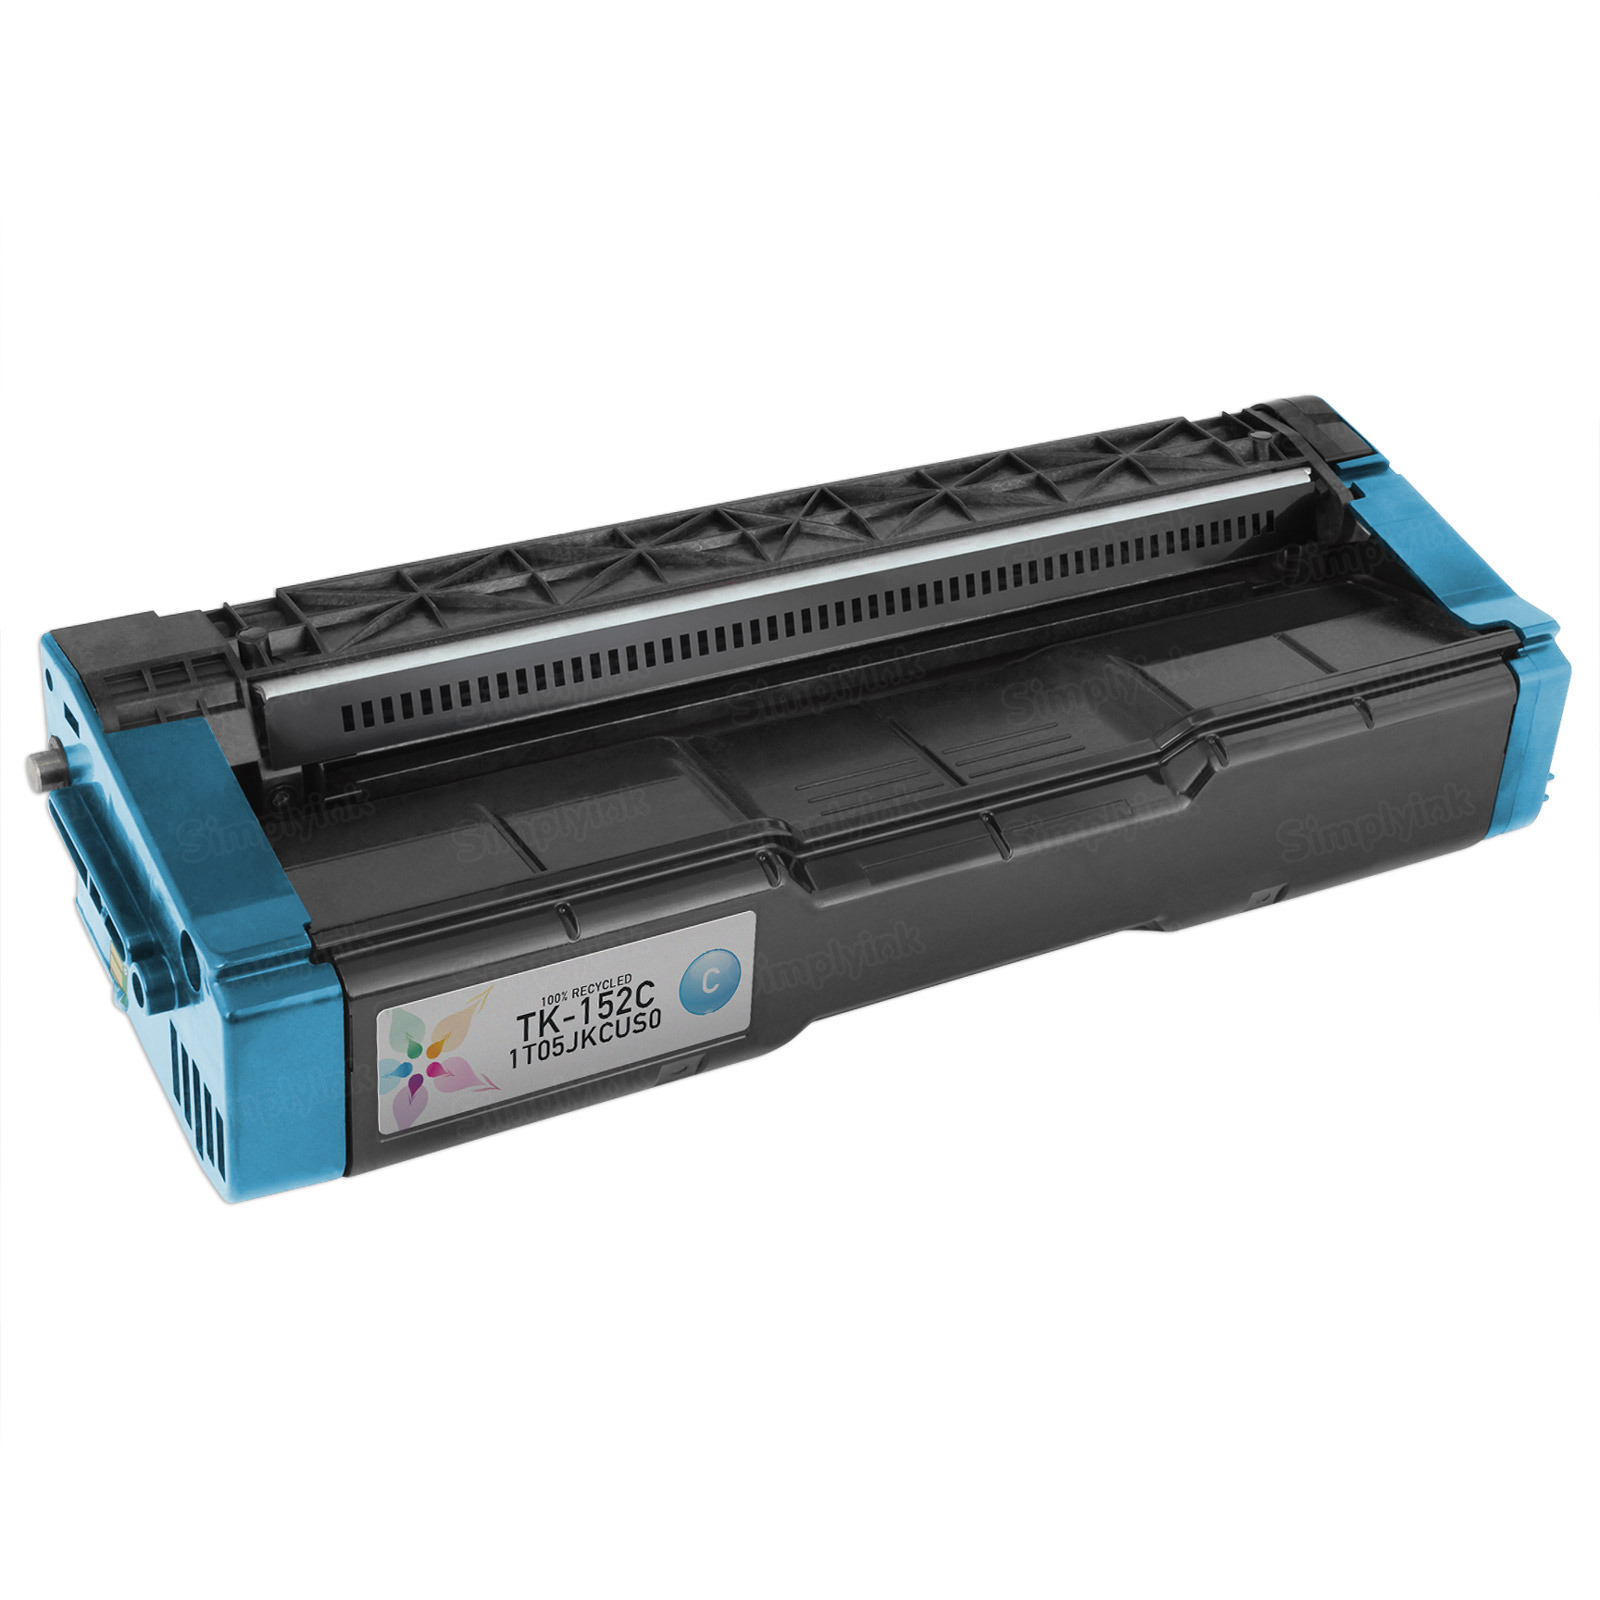 Remanufactured TK-152C Cyan Toner